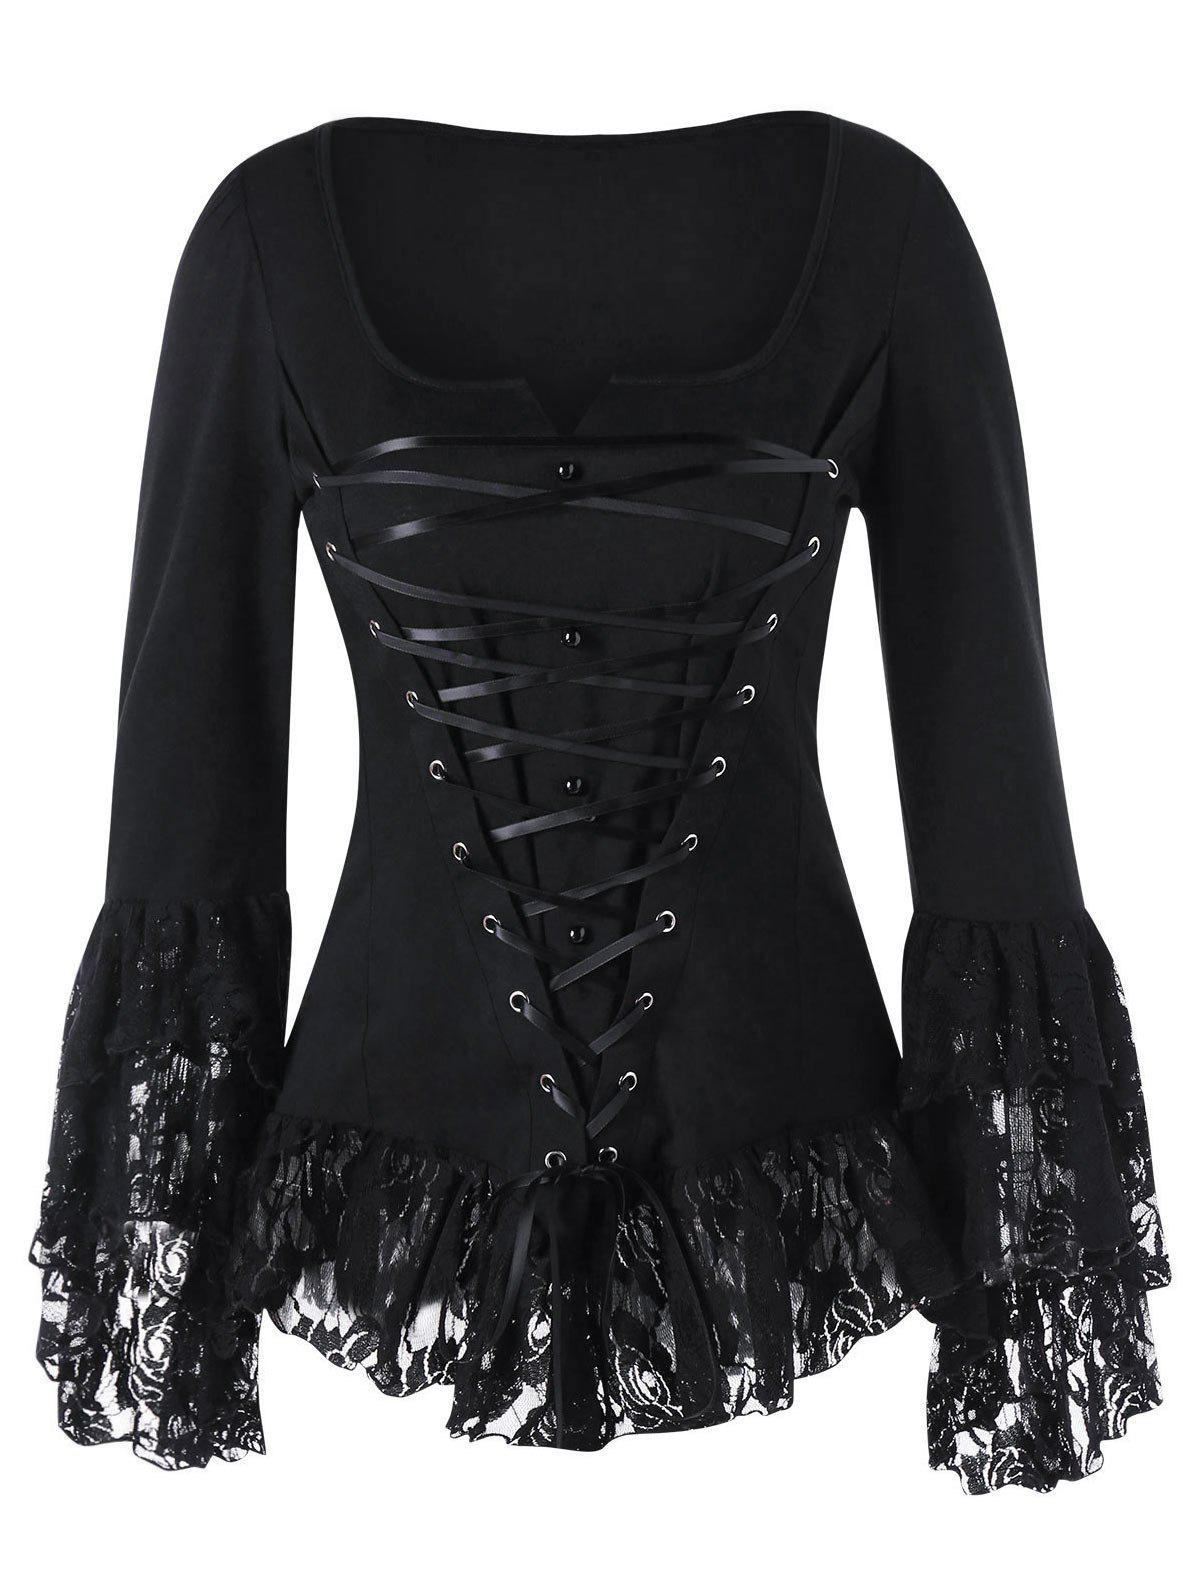 Lace Up Square Neck Gothic Top - BLACK 2XL